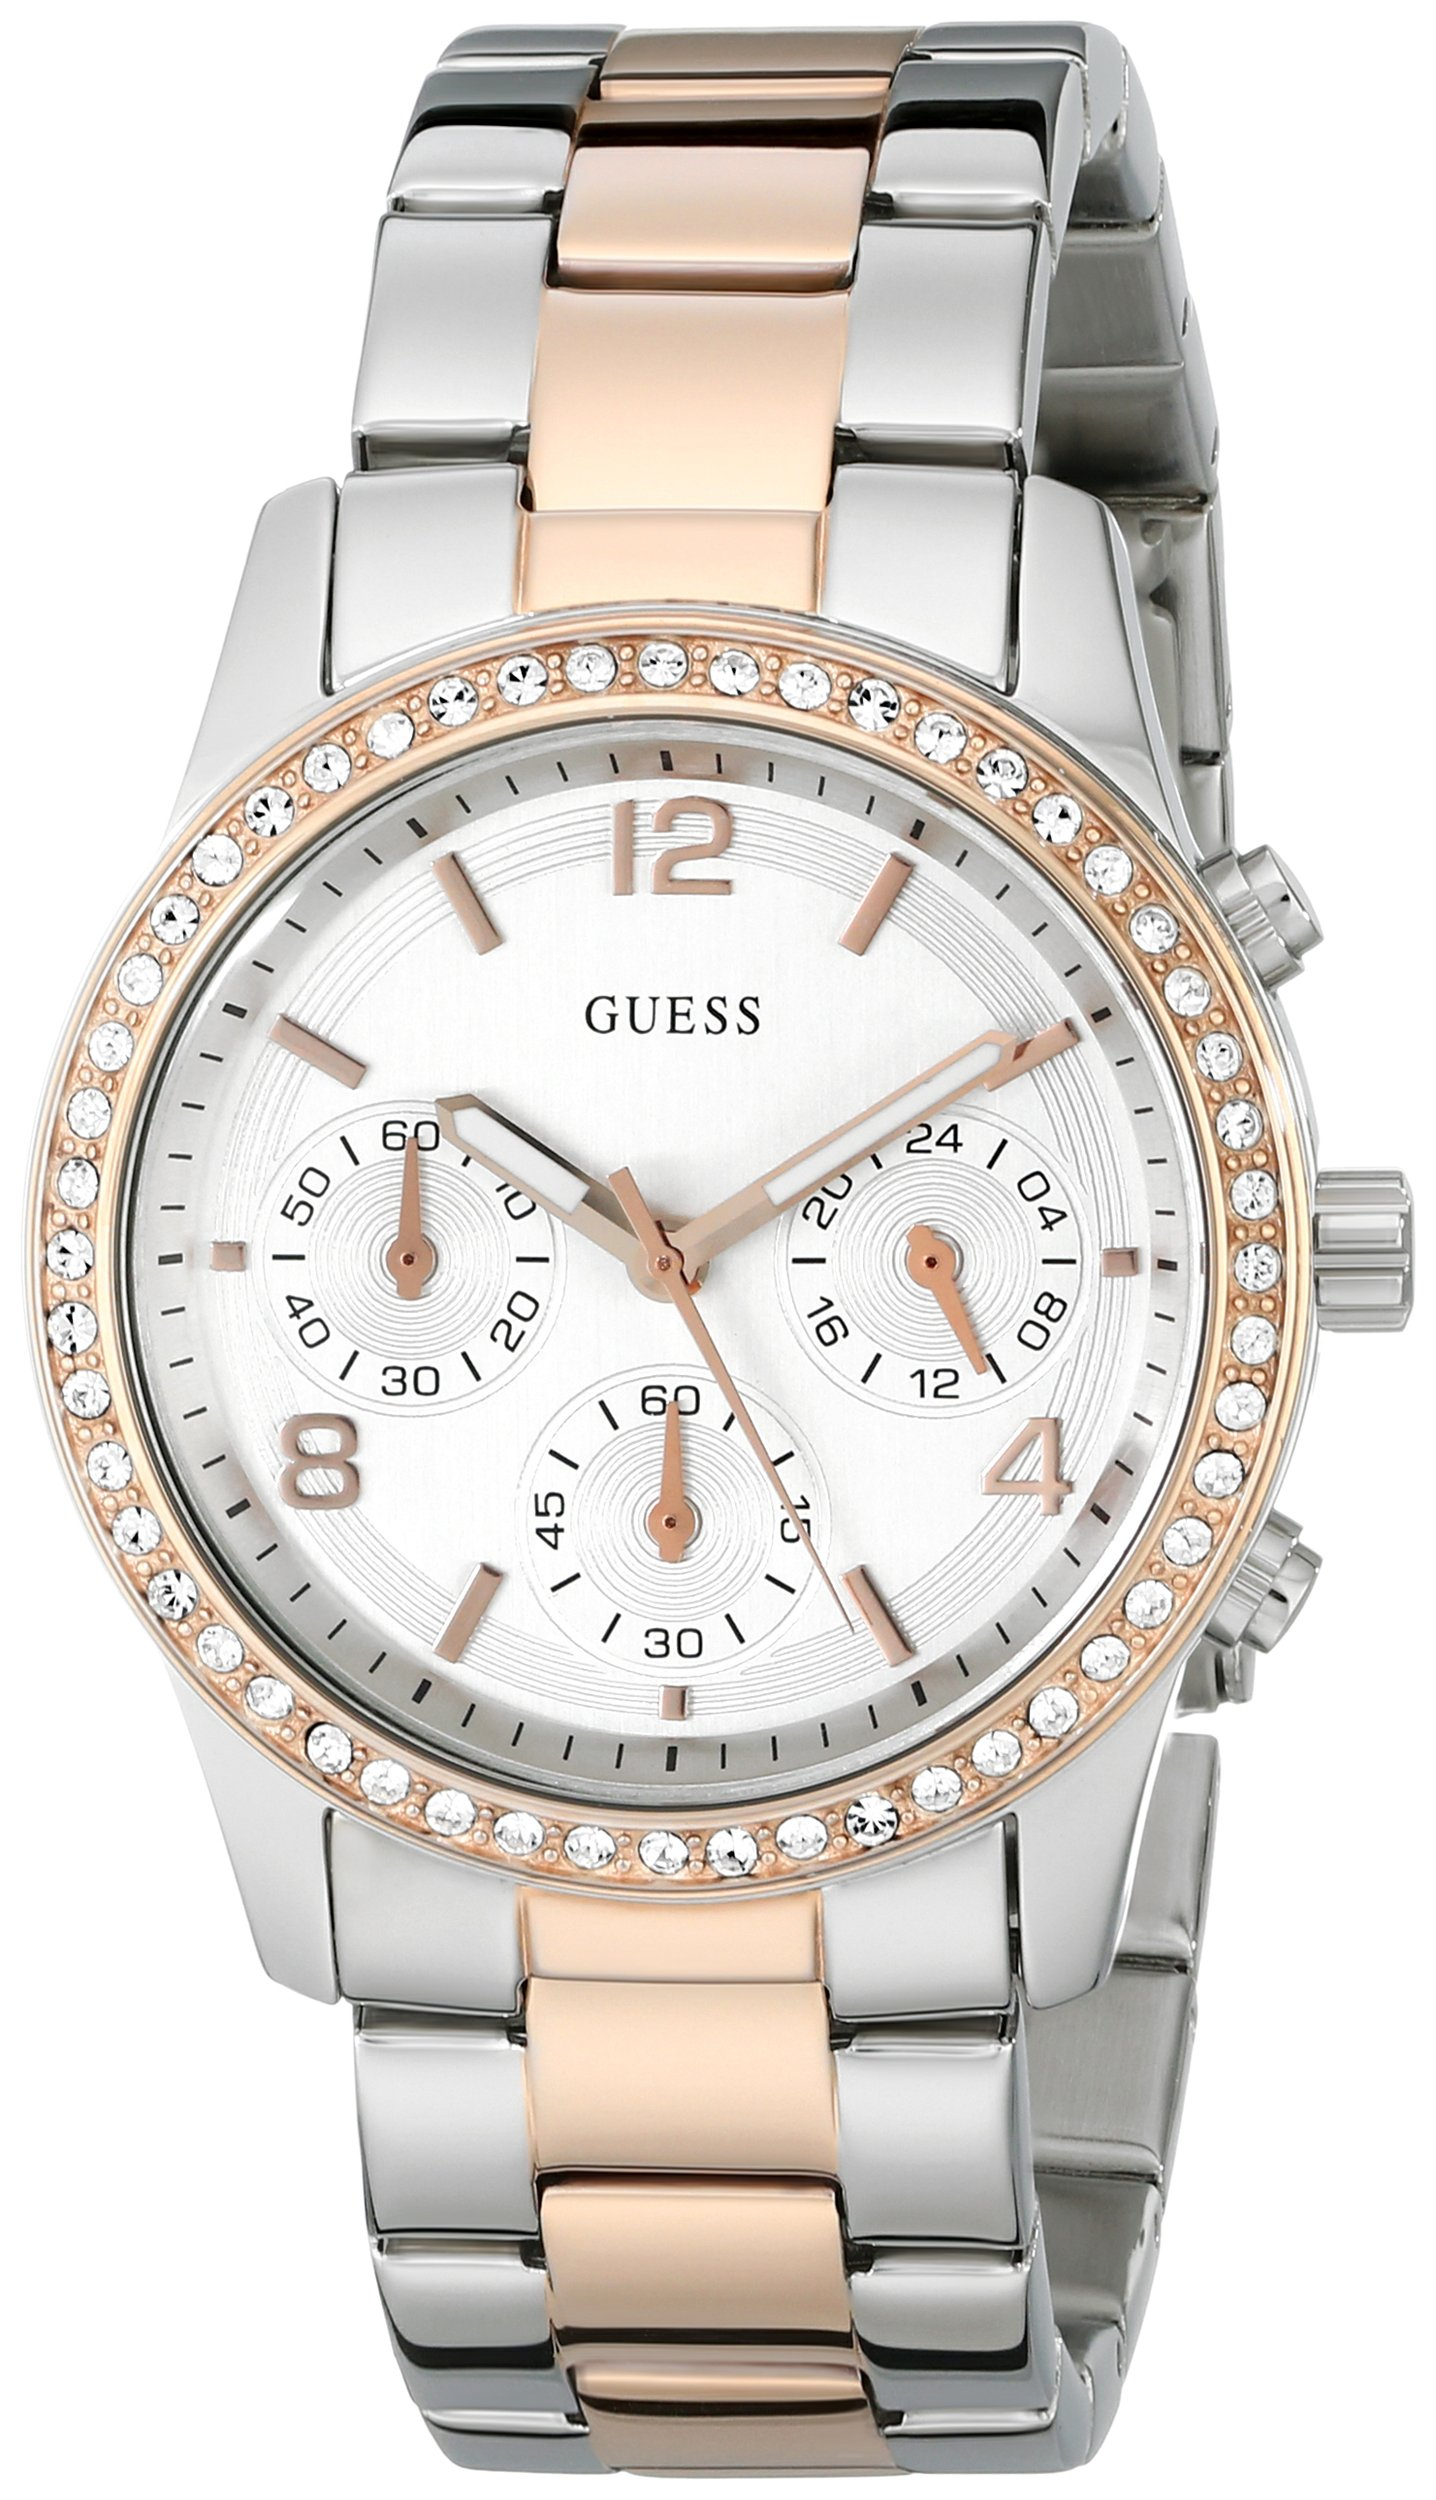 Guess U0122L1 chronograph silver dial stainless steel bracelet women watch NEW